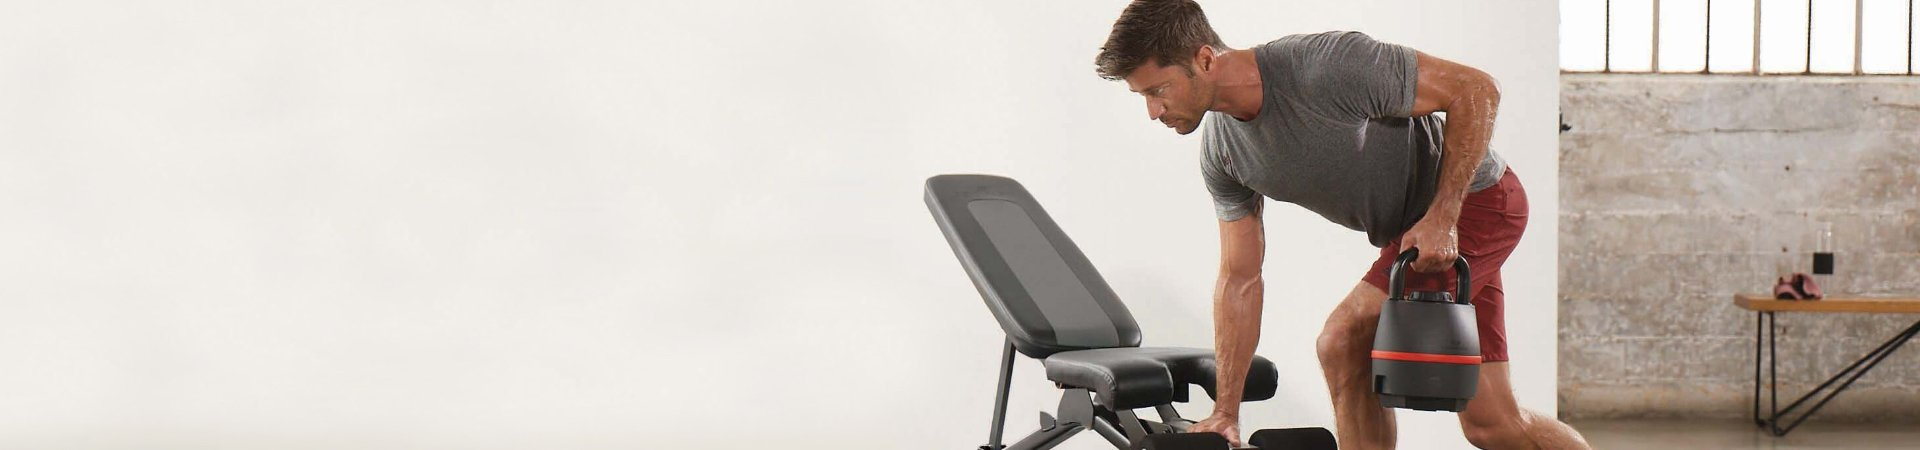 New SelectTech 4.1S Bench - Pairs well with SelectTech Dumbbells or Kettlebell